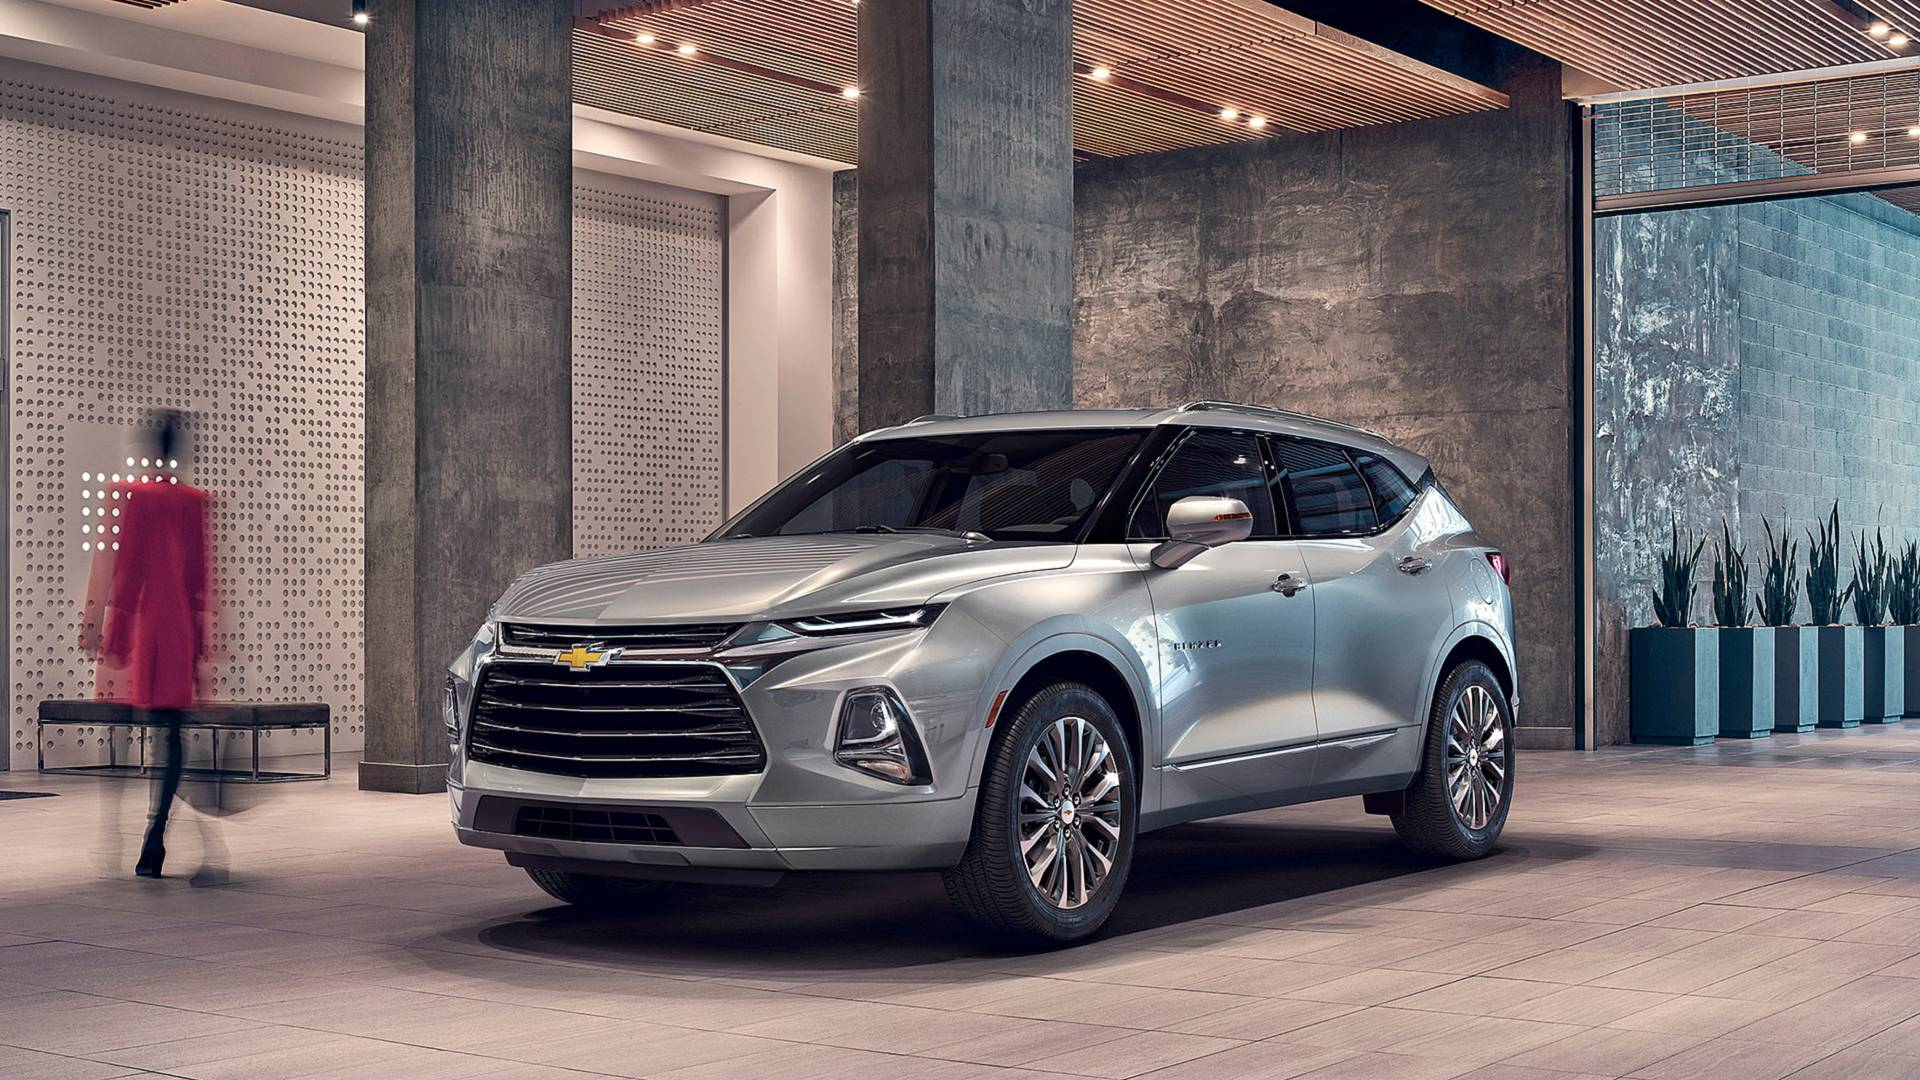 2019 Chevrolet Blazer Pricing Tops At $48,960 - autoevolution